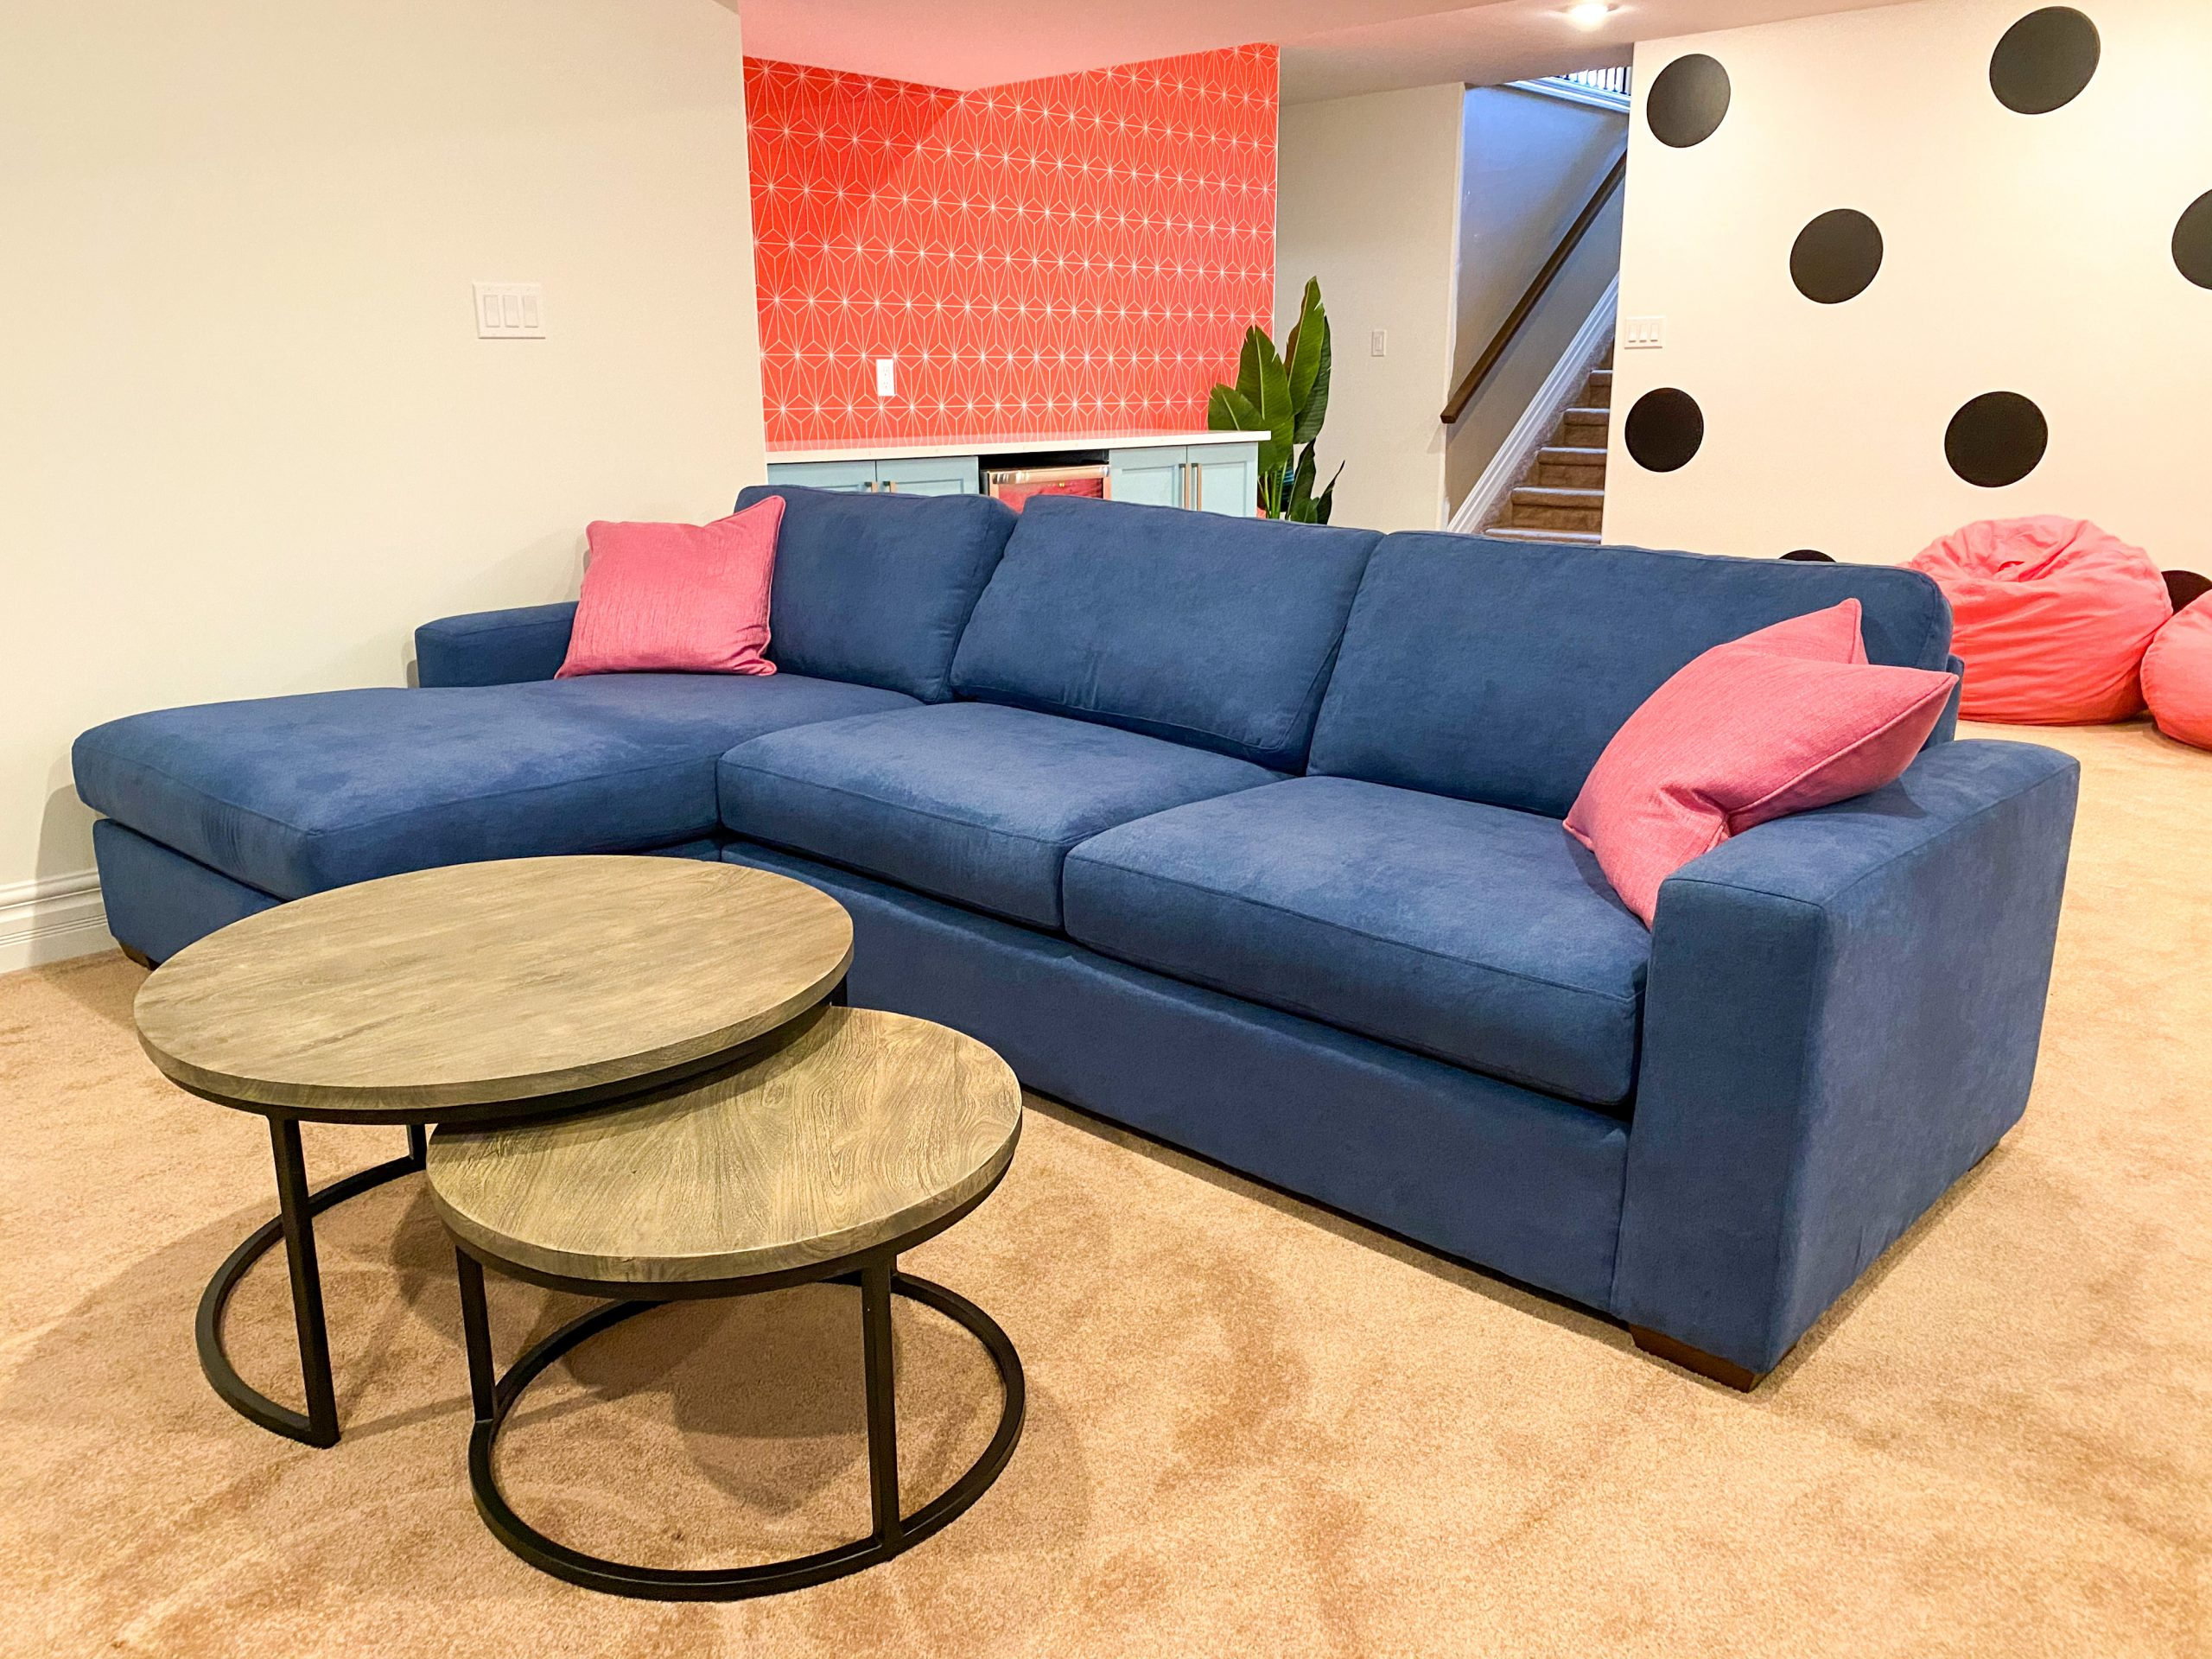 Colourful basement renovation in Lasalle Ontario including a blue sectional sofa